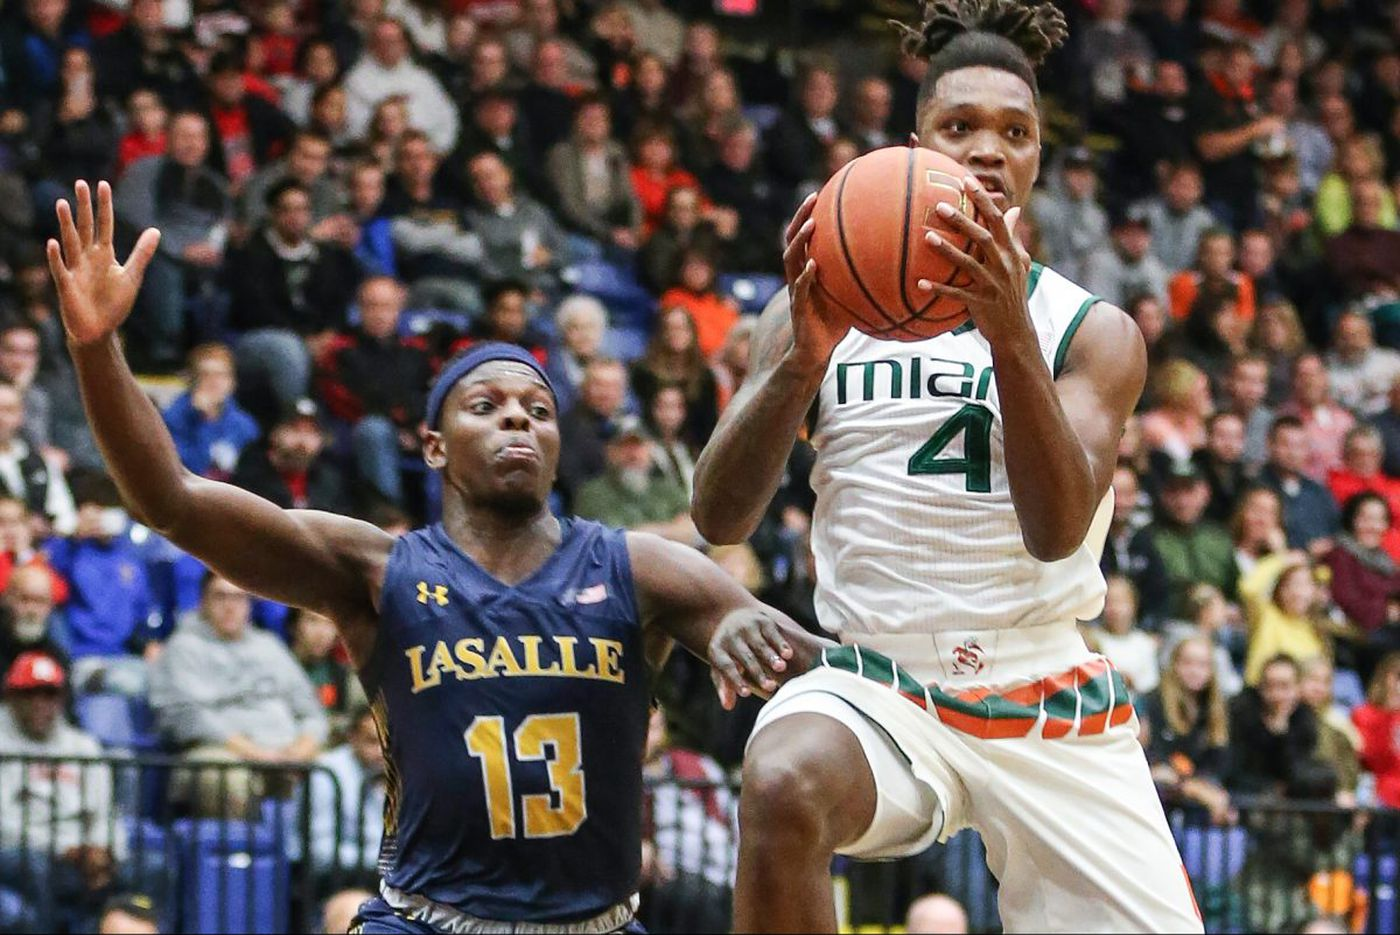 Miami's Lonnie Walker says interview with Sixers went well